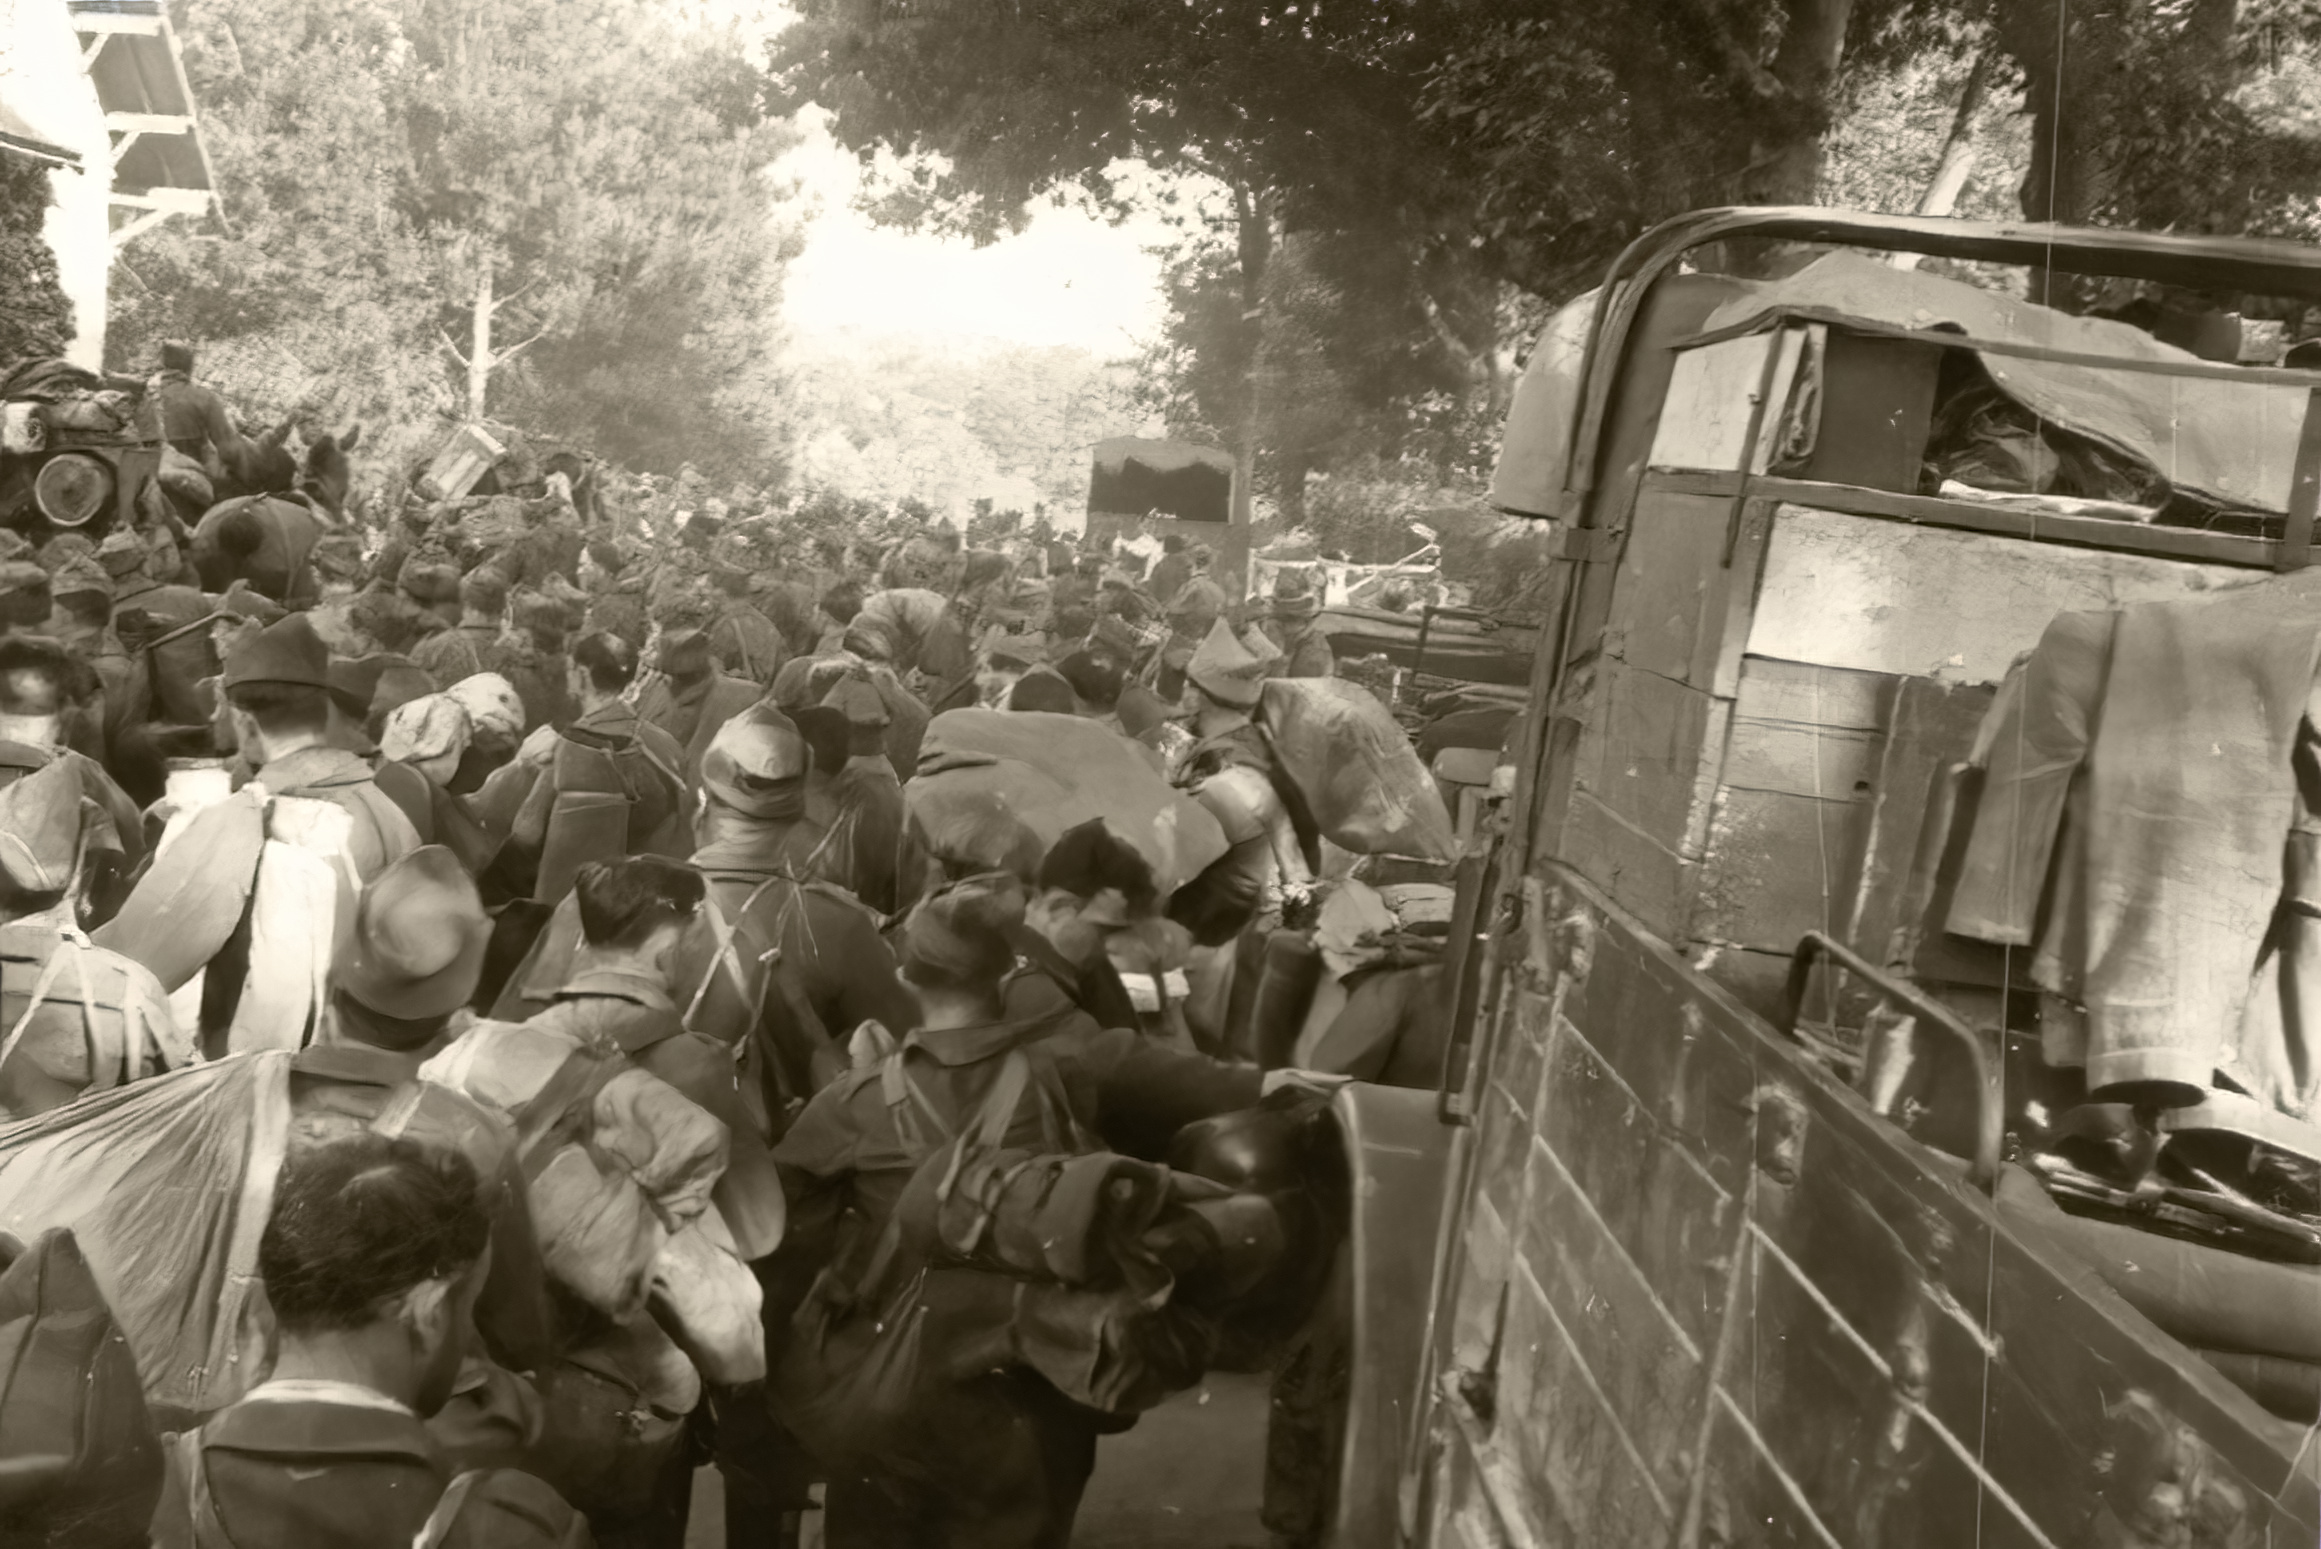 War refugees caused chaos for the French army trying to maneuver during the German advance 1940